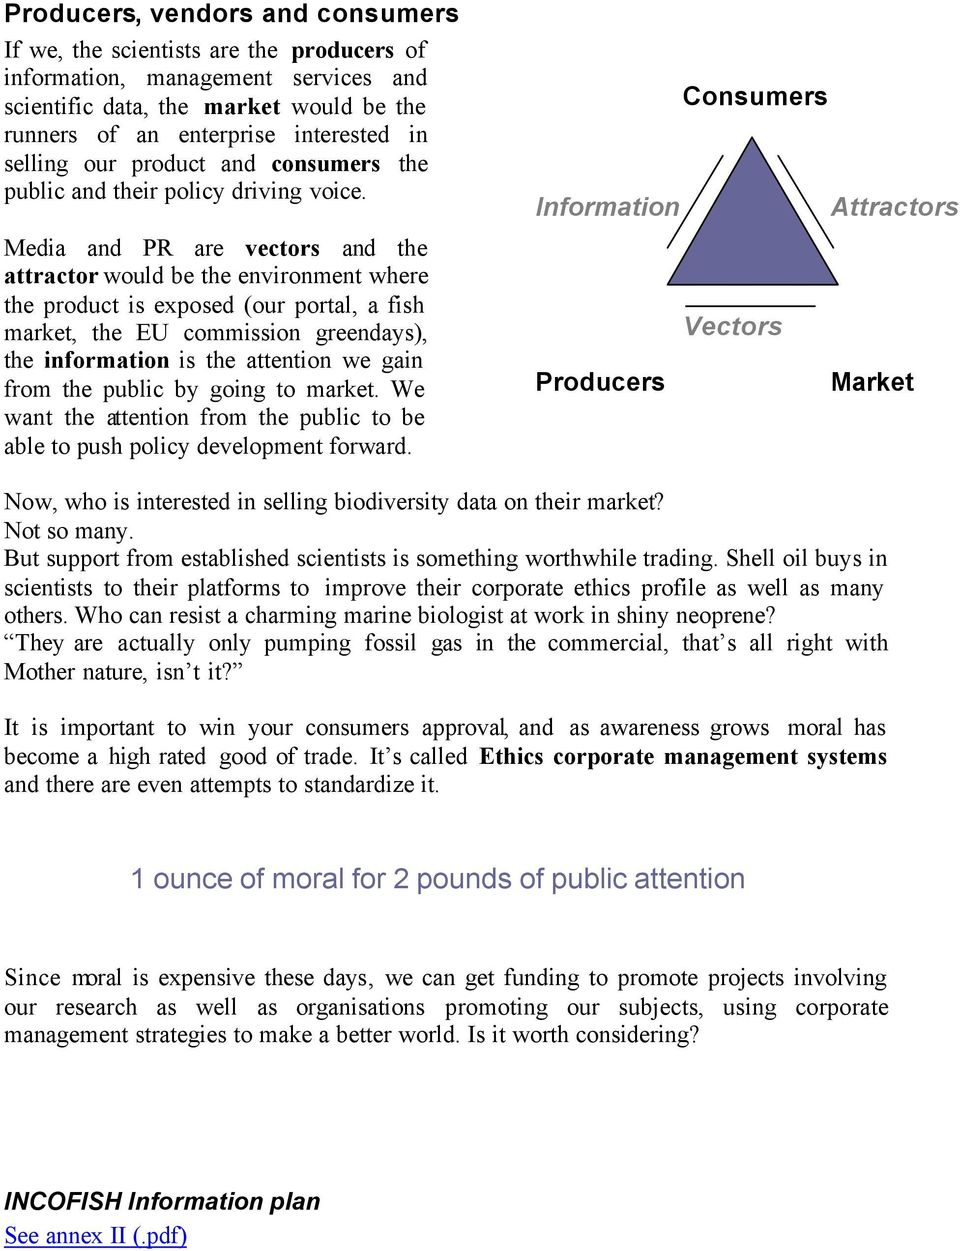 Media and PR are vectors and the attractor would be the environment where the product is exposed (our portal, a fish market, the EU commission greendays), the information is the attention we gain